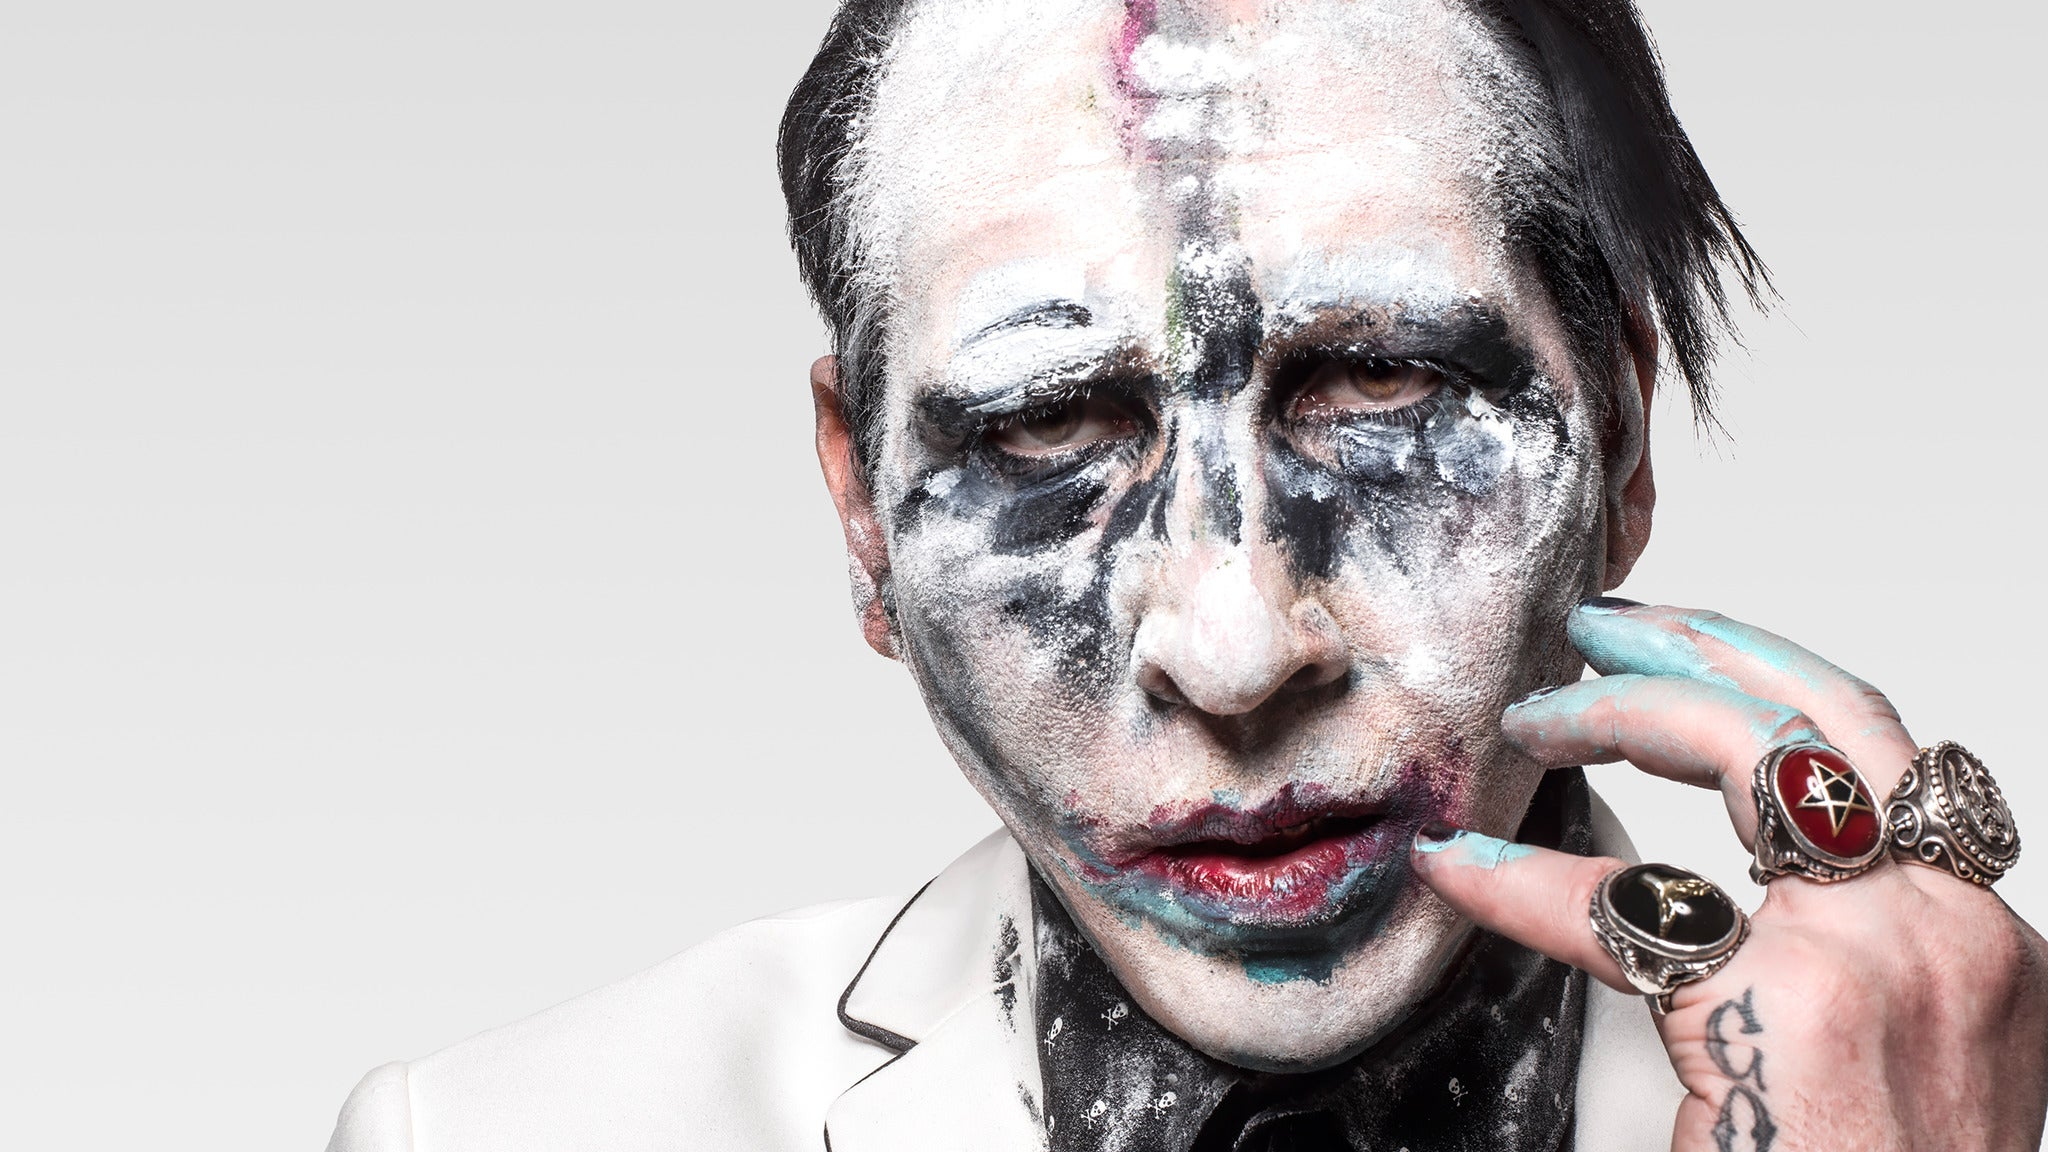 An Evening With Marilyn Manson at Fox Theater - Oakland